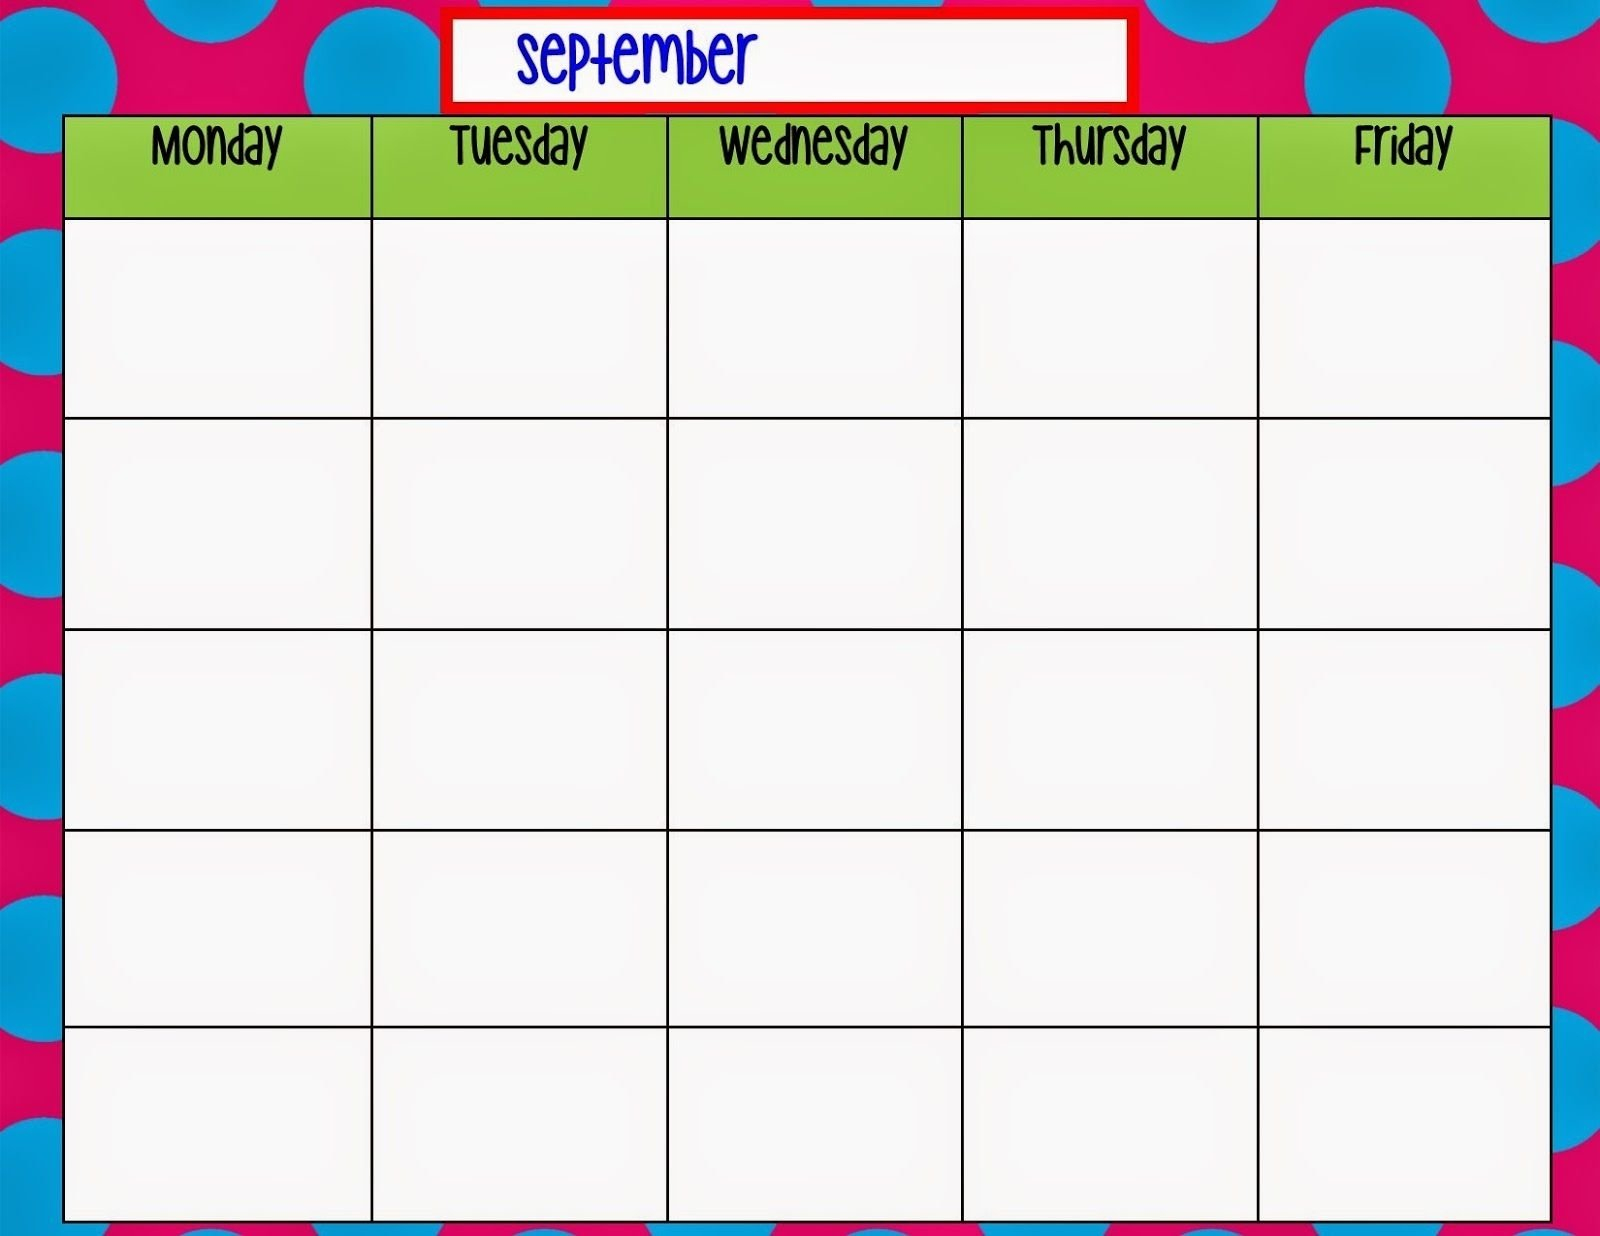 Weekly Schedule Monday Through Friday - Calendar Printable Schedule Mon To Friday